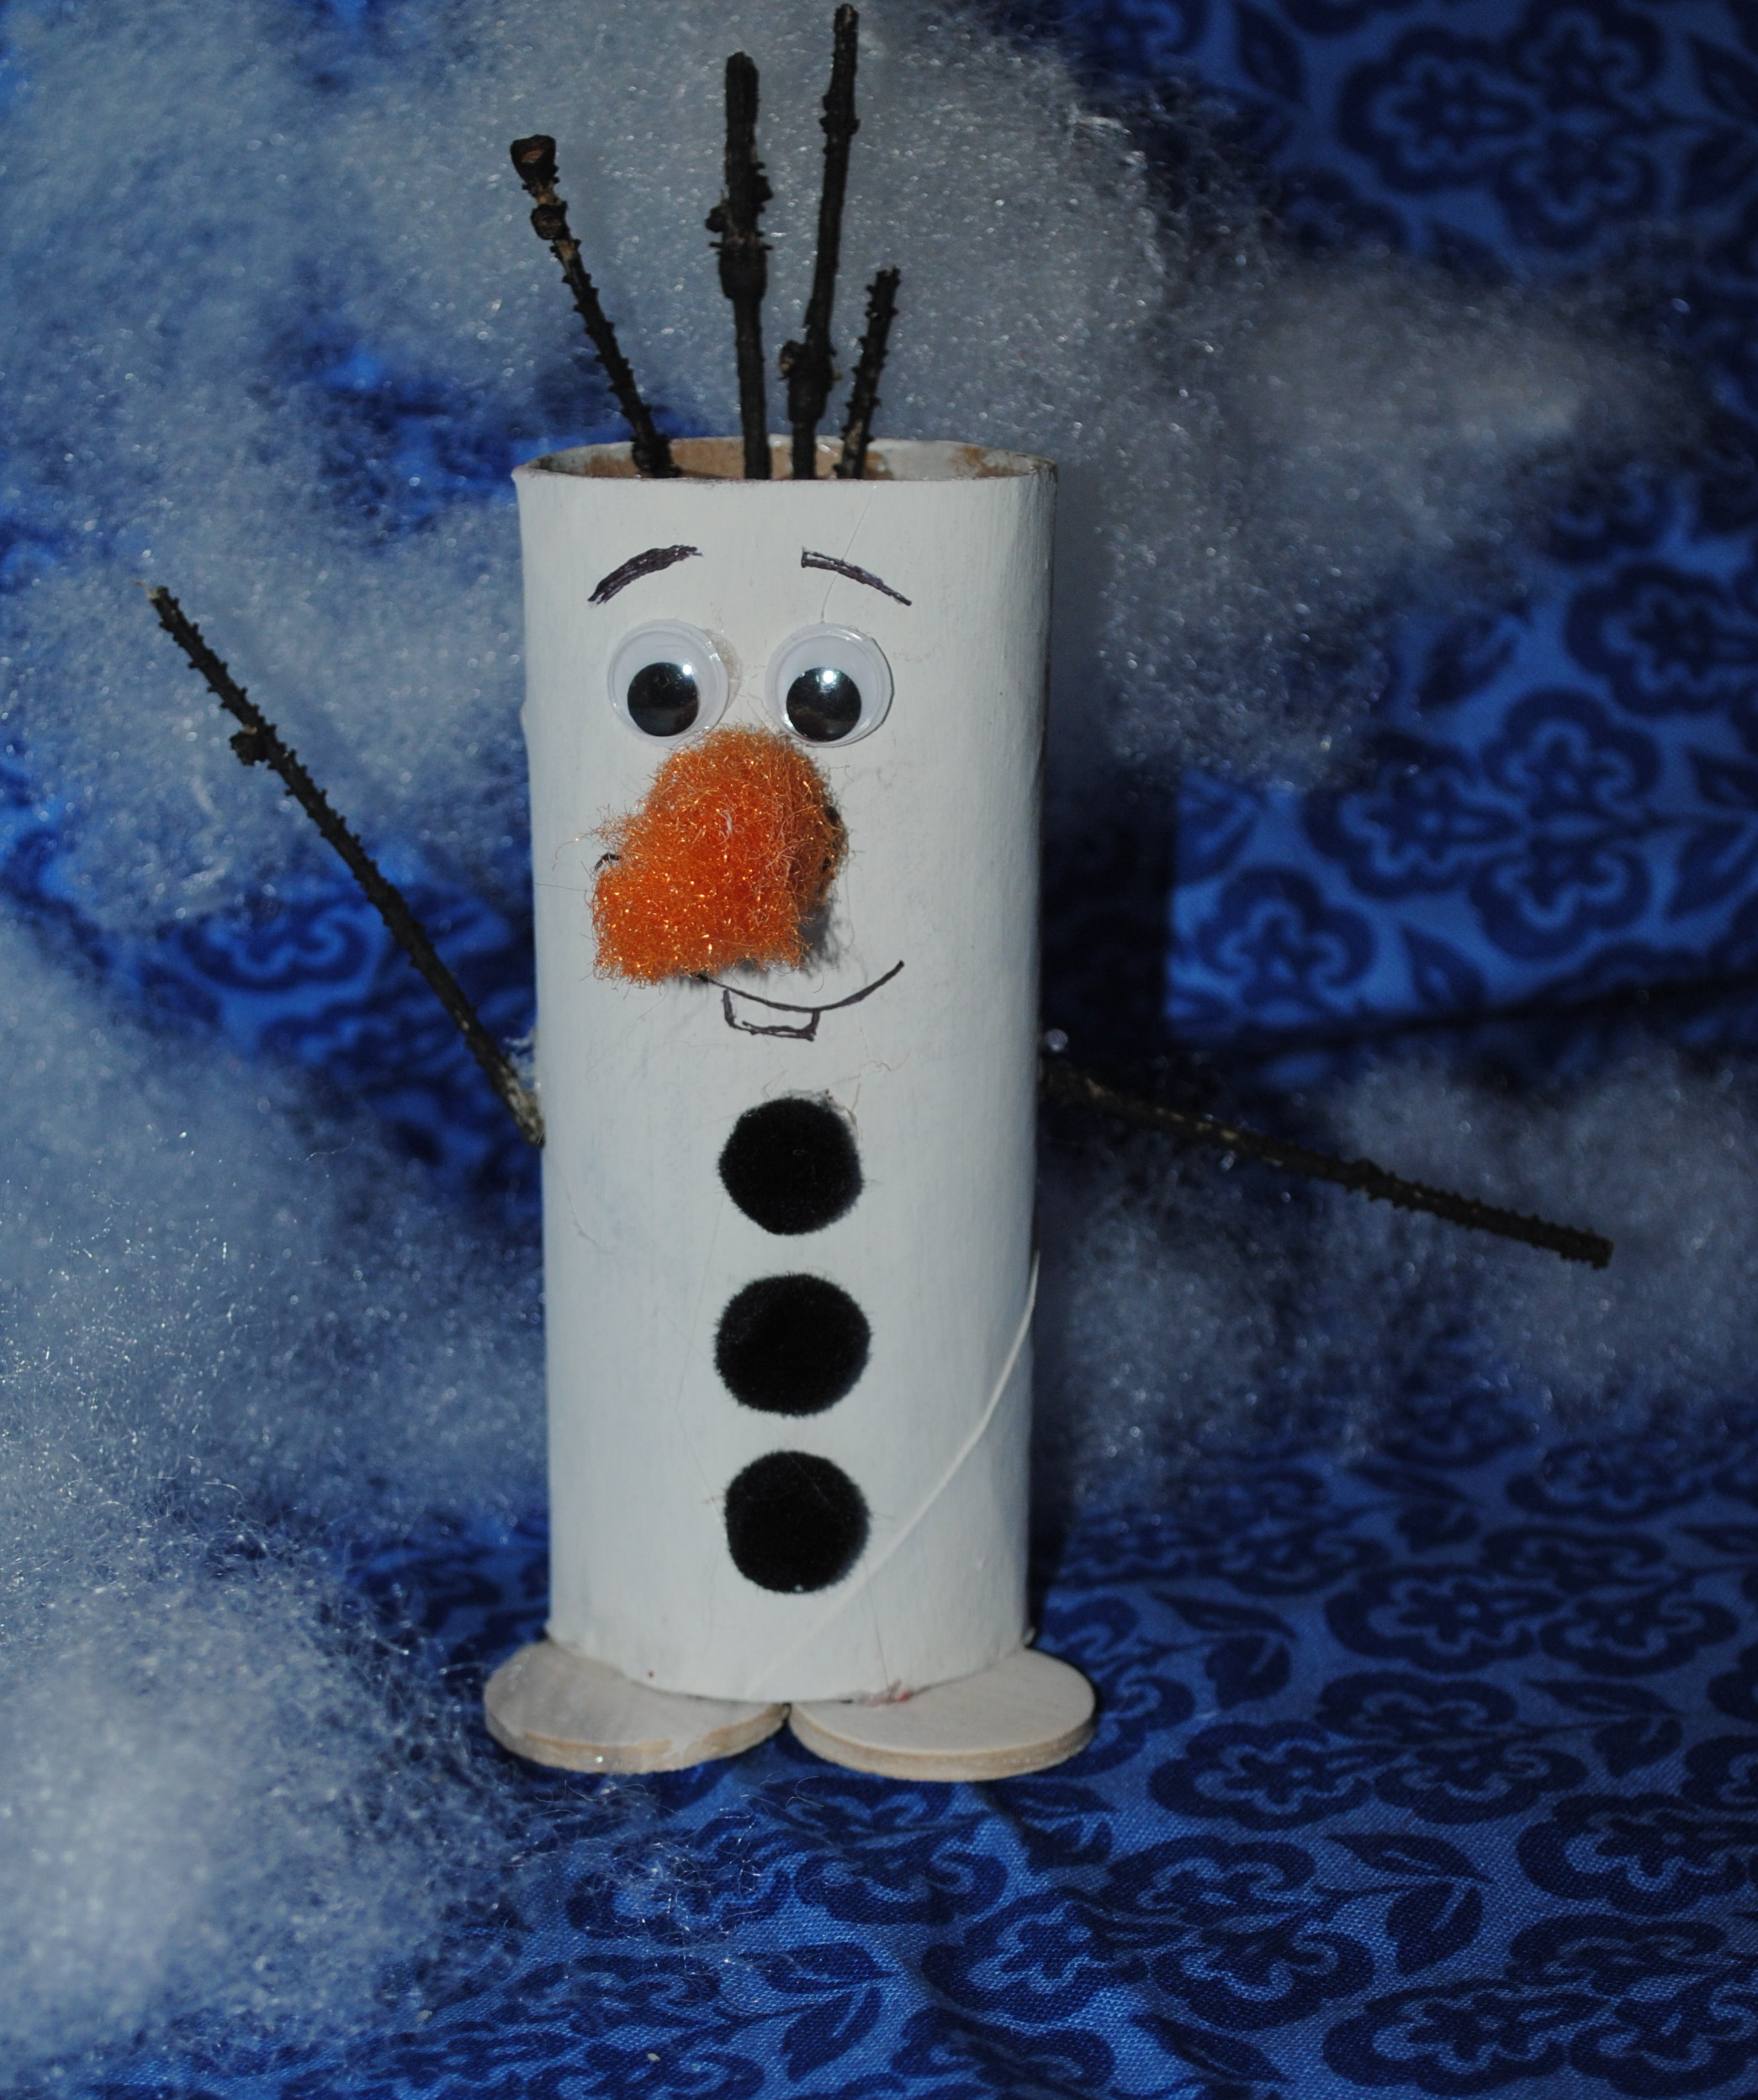 Snowman Toilet Paper Roll Crafts